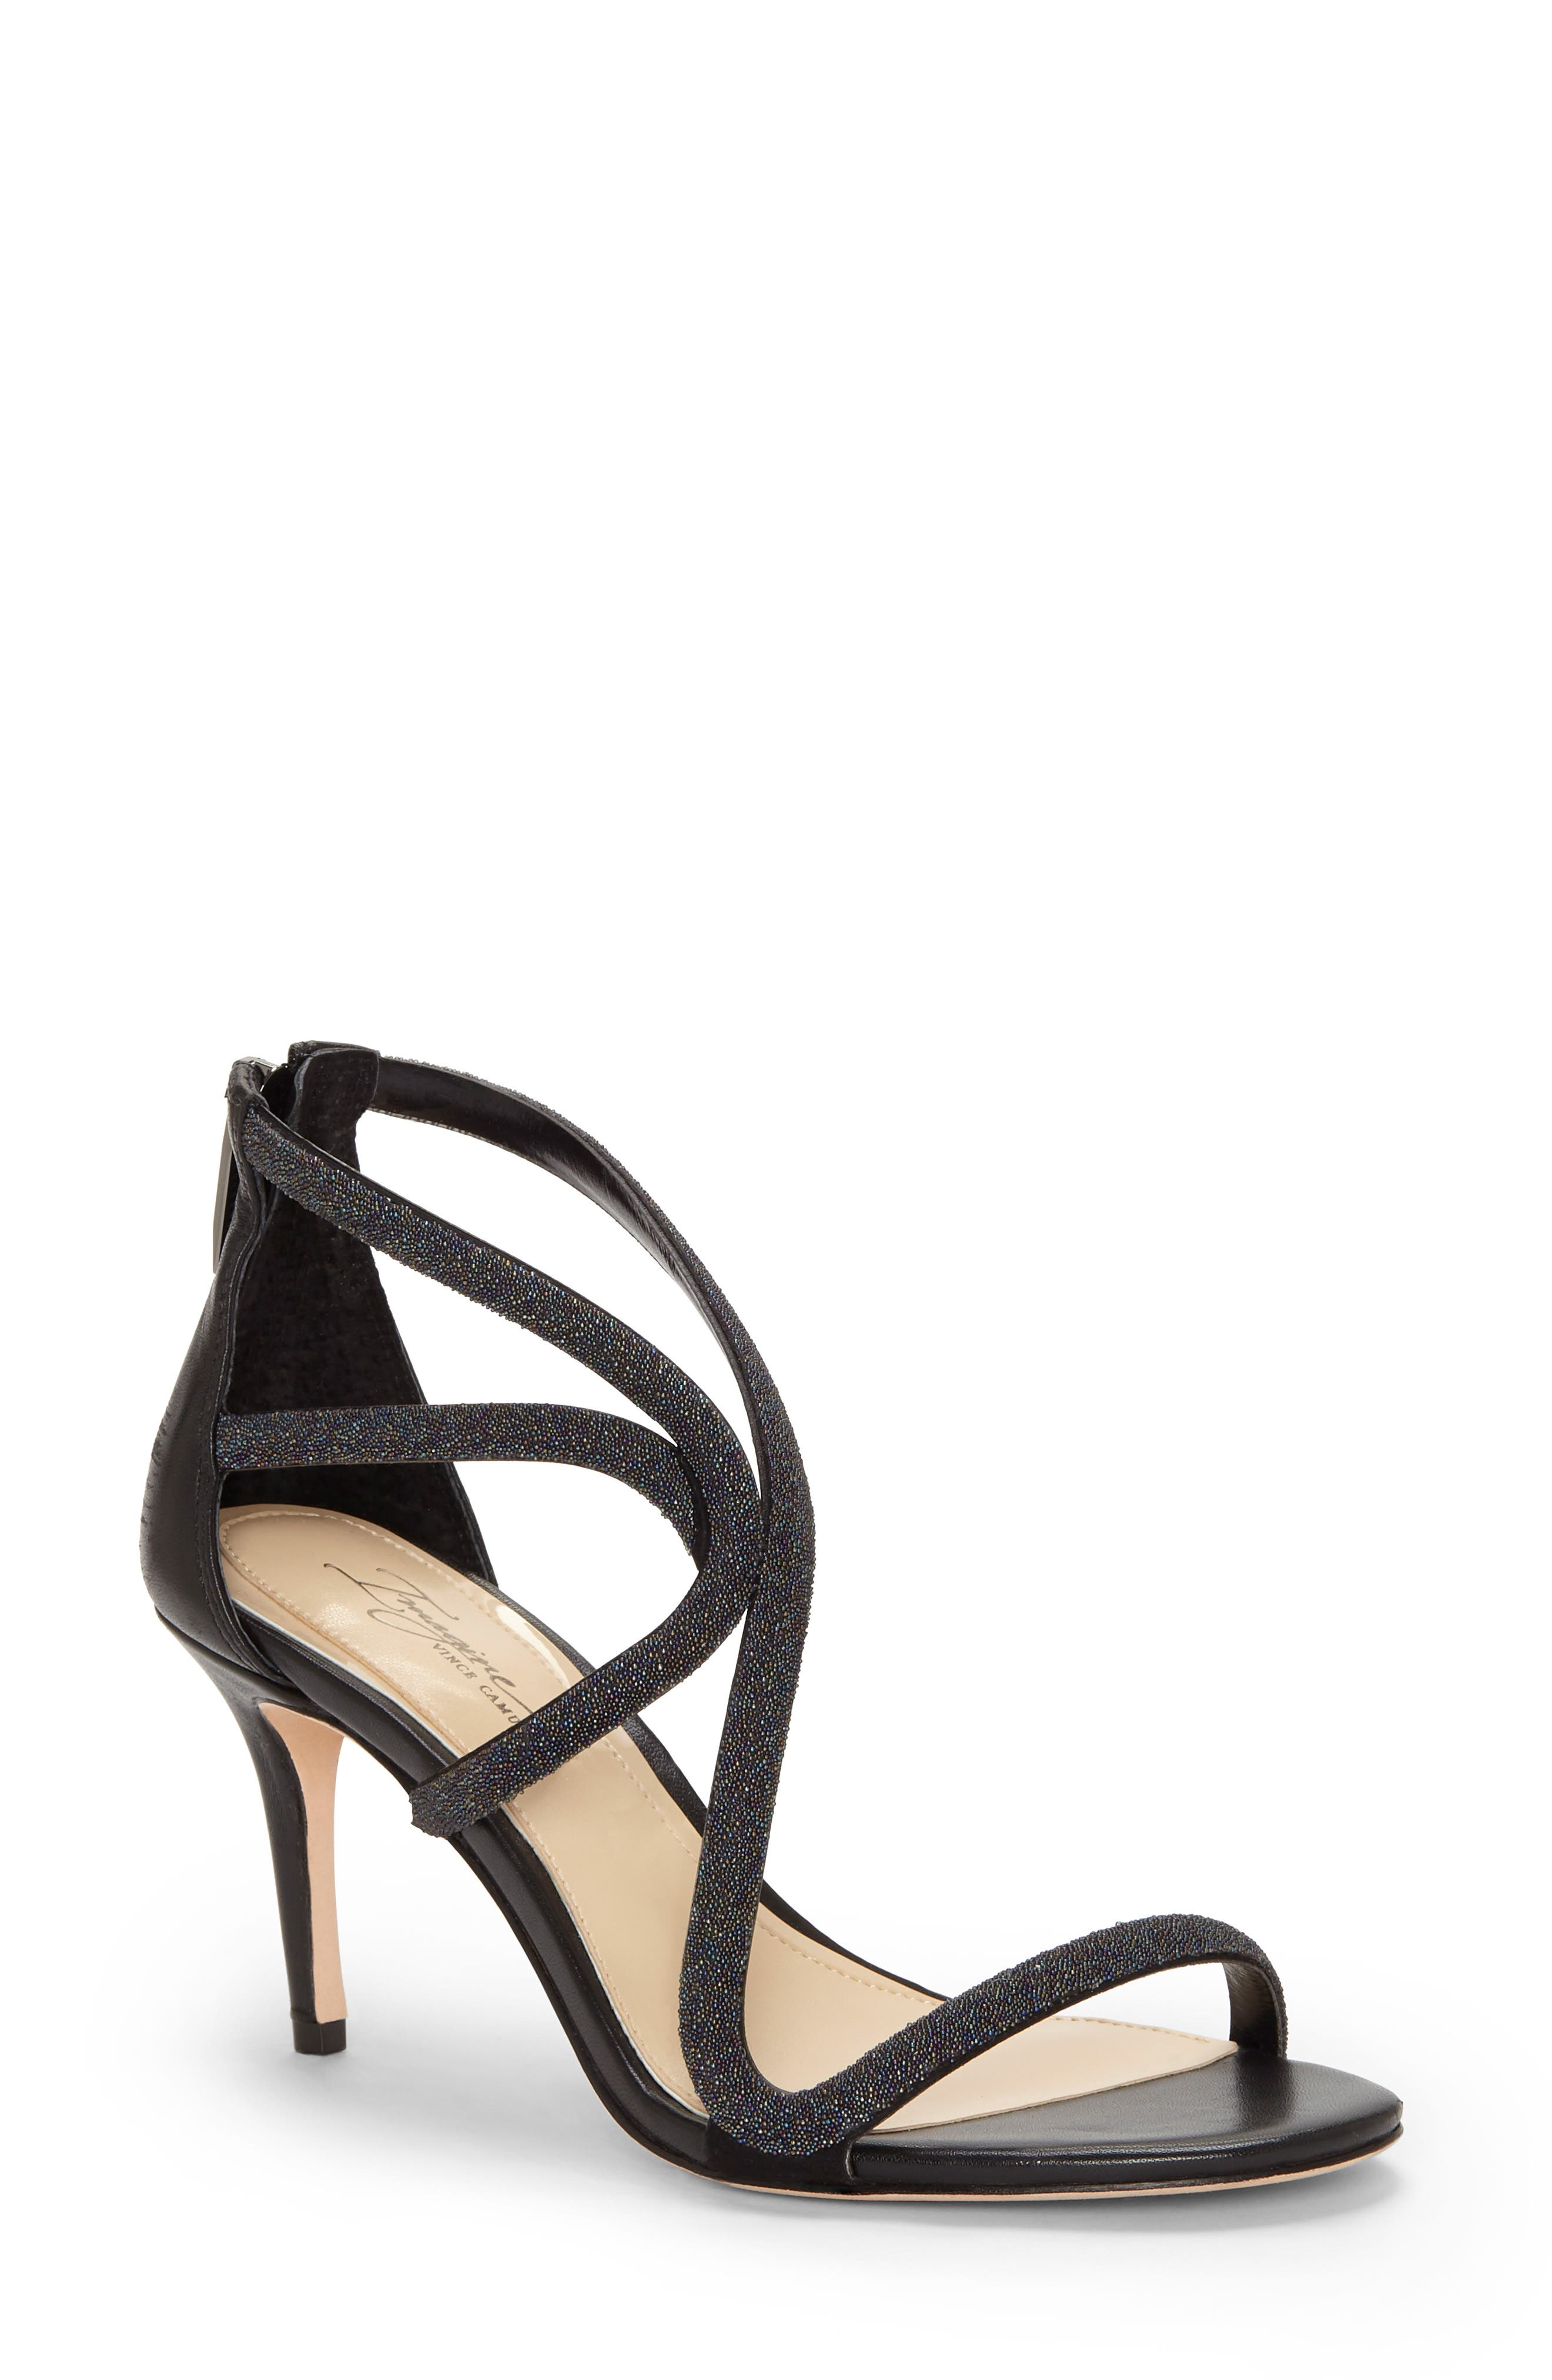 Imagine By Vince Camuto Petara Strappy Sandal- Black